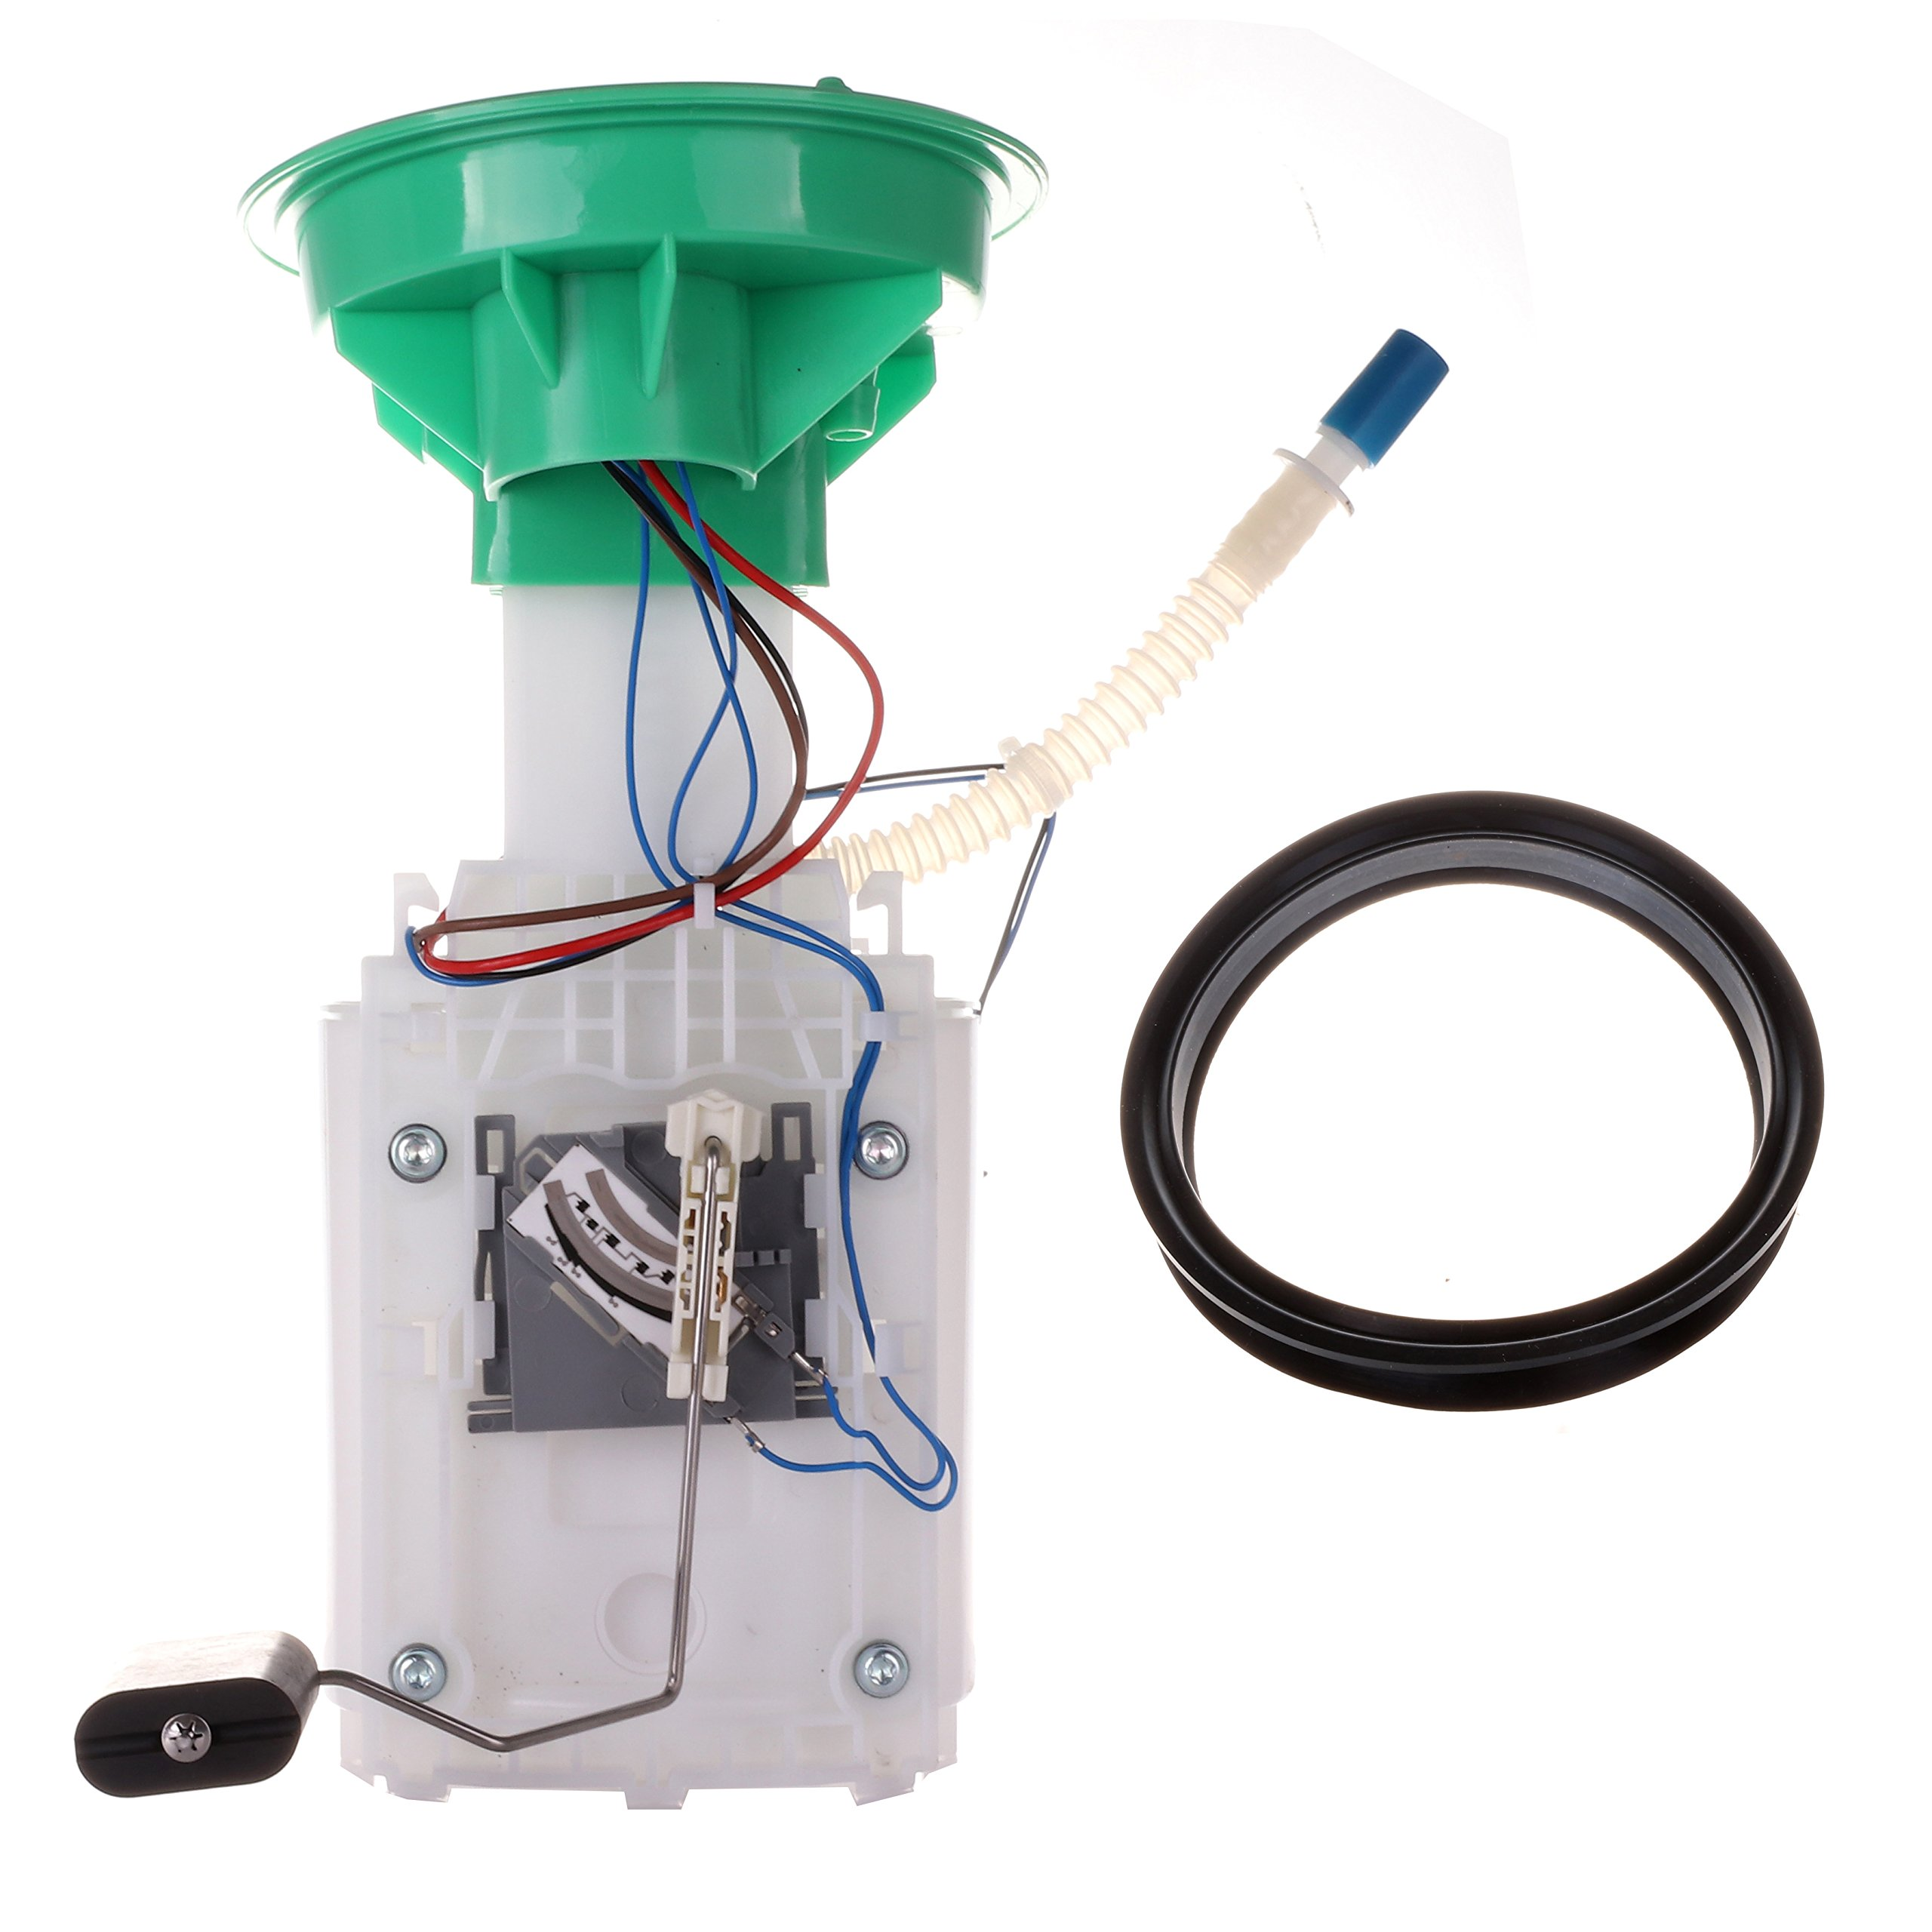 OCPTY Fuel Pump E8594M SP5010M Replacement for Mini Cooper 2002 2003 2004 L4-1.6L Supercharged with Sending Unit